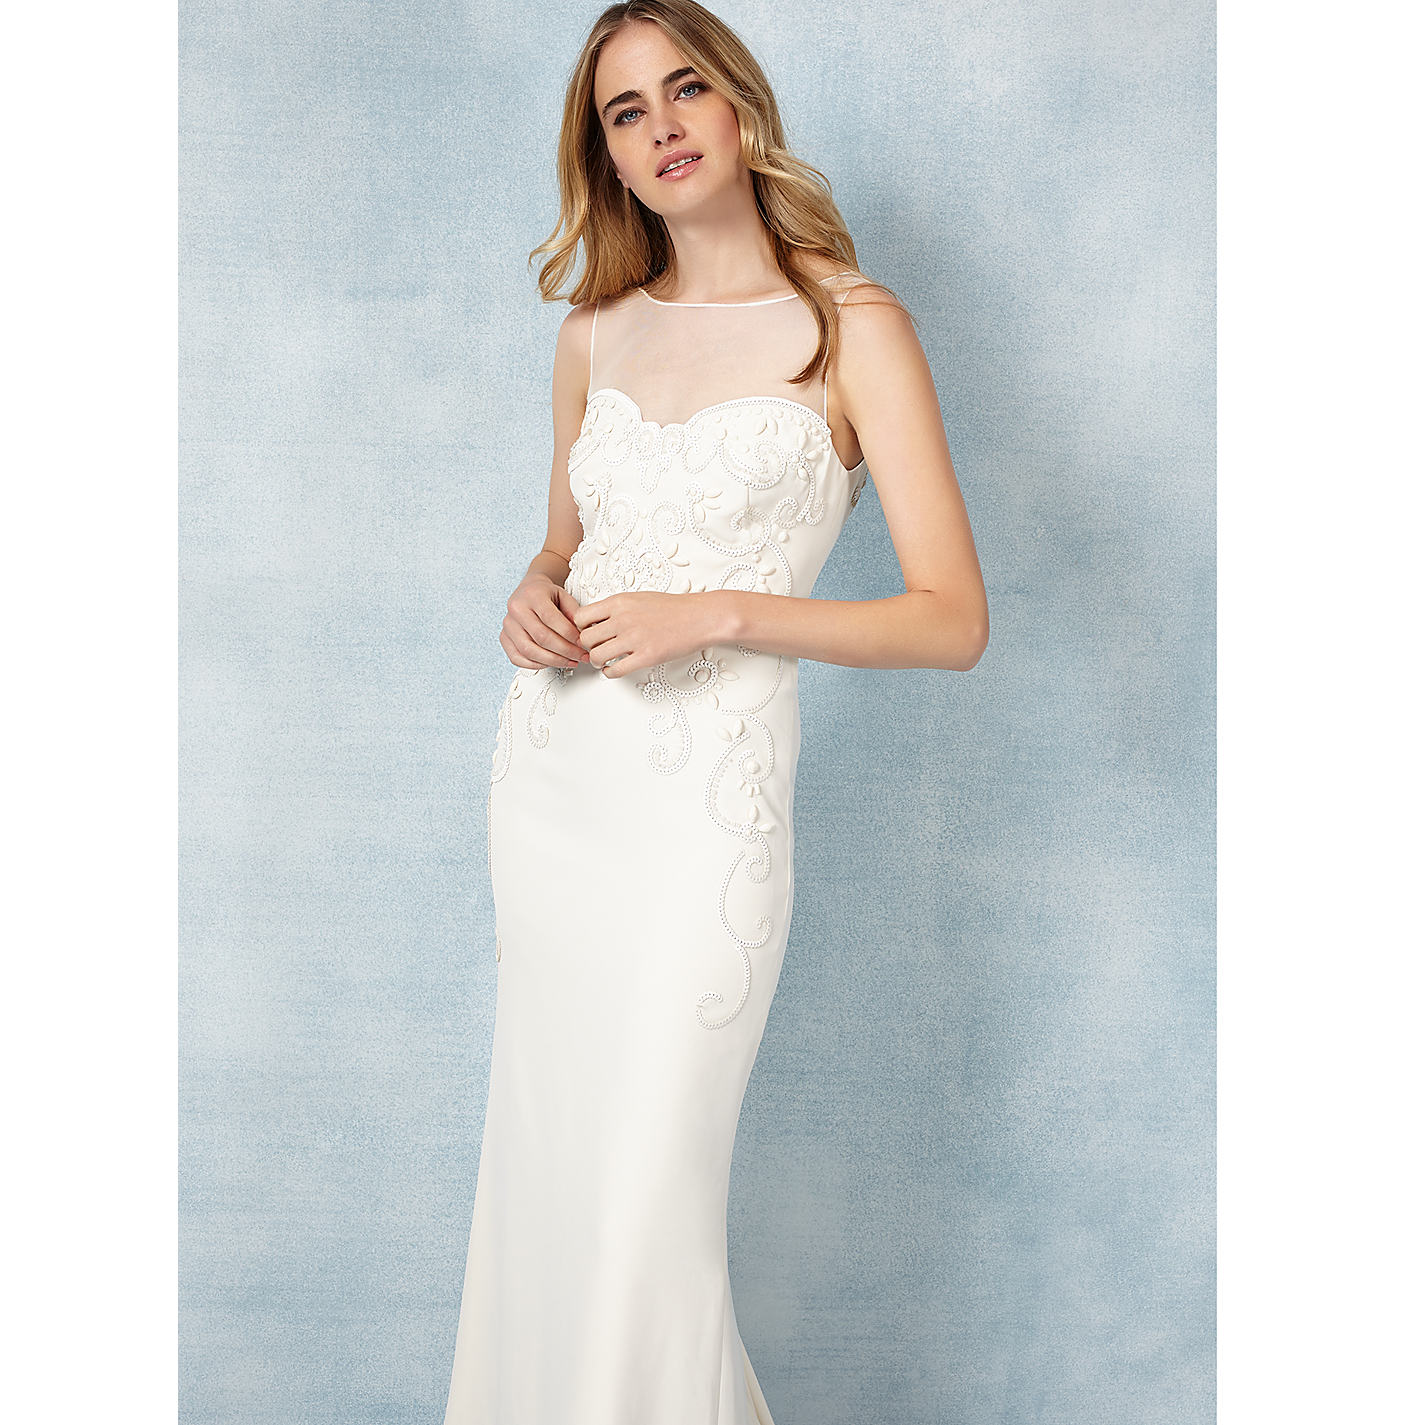 Phase Eight Bridal Carinne Wedding Dress Cream Online At Johnlewis